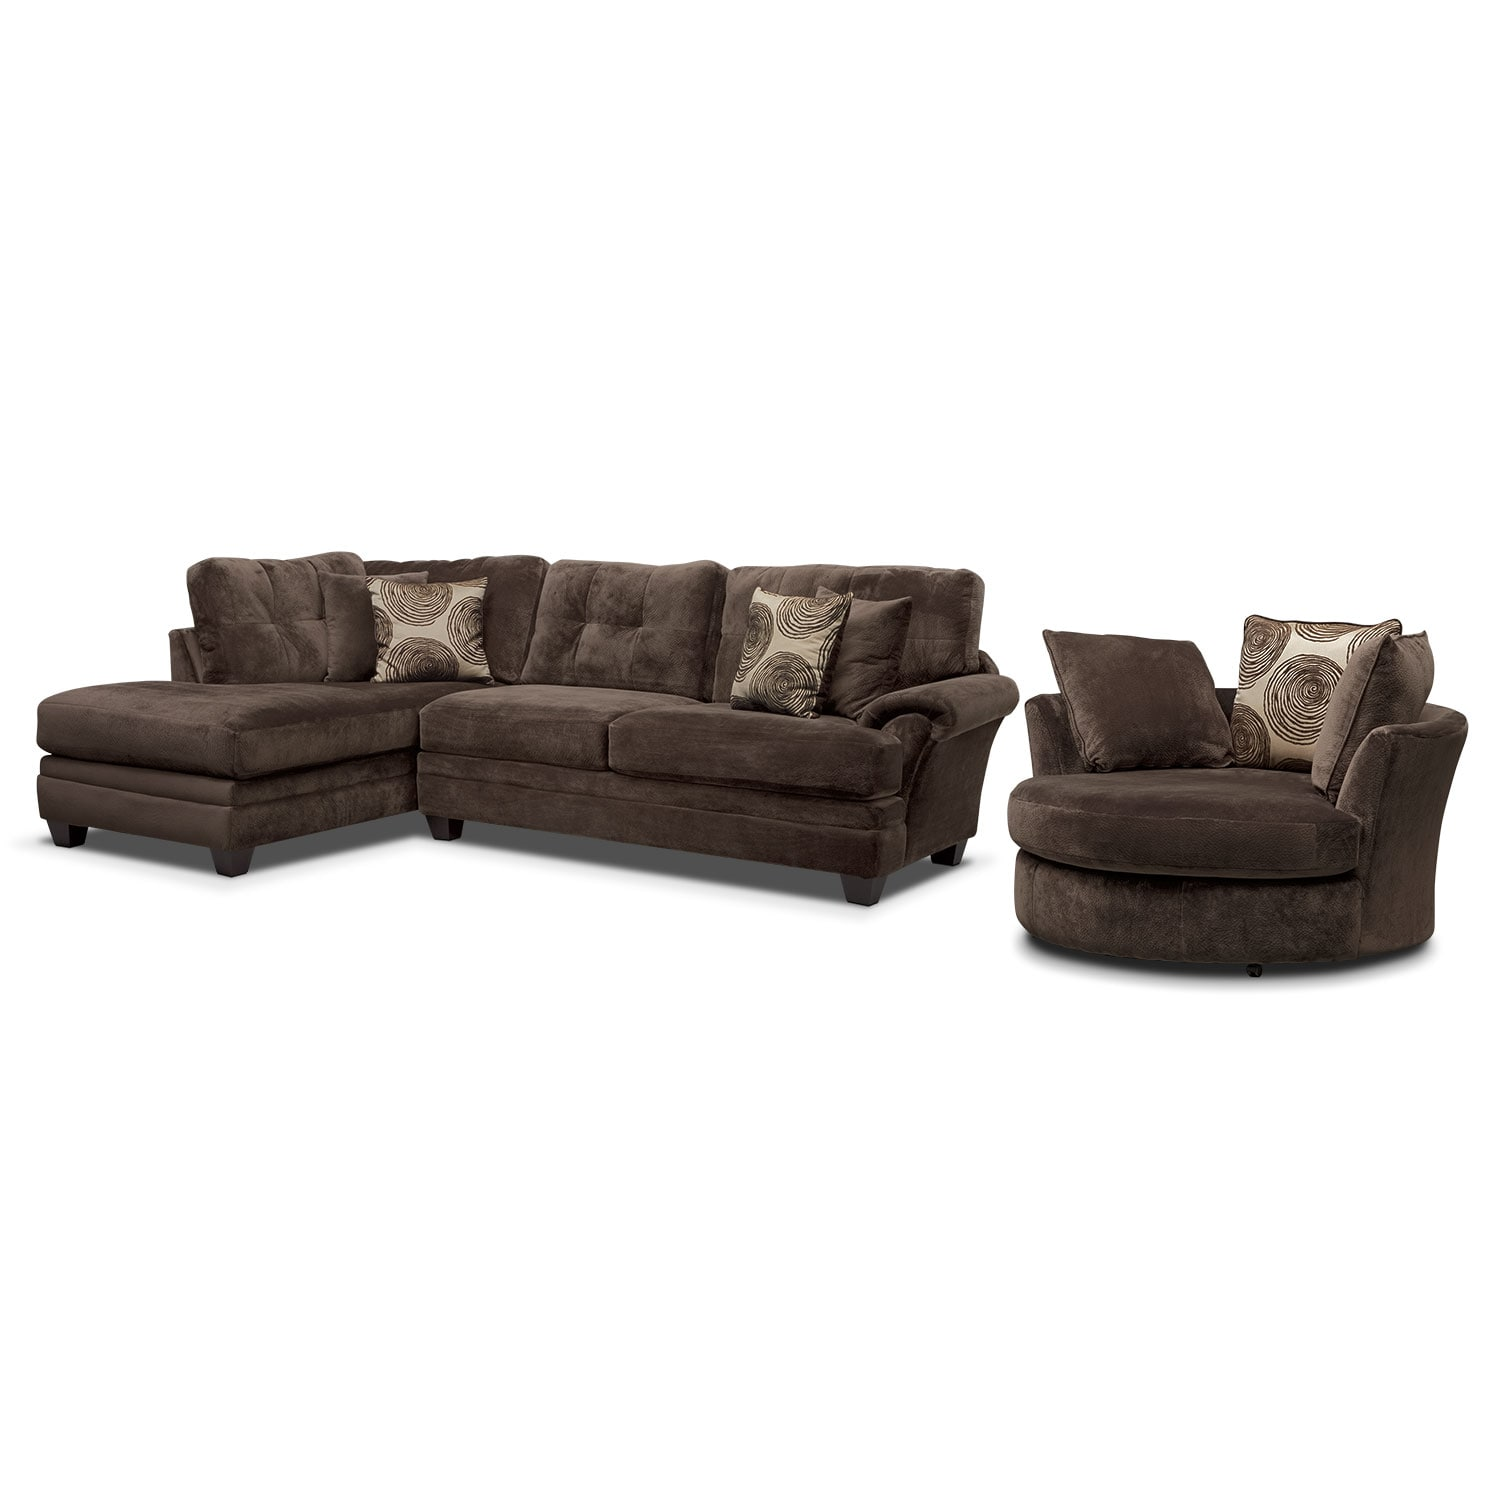 Cordelle 2 Piece Sectional With Chaise And Swivel Chair Set